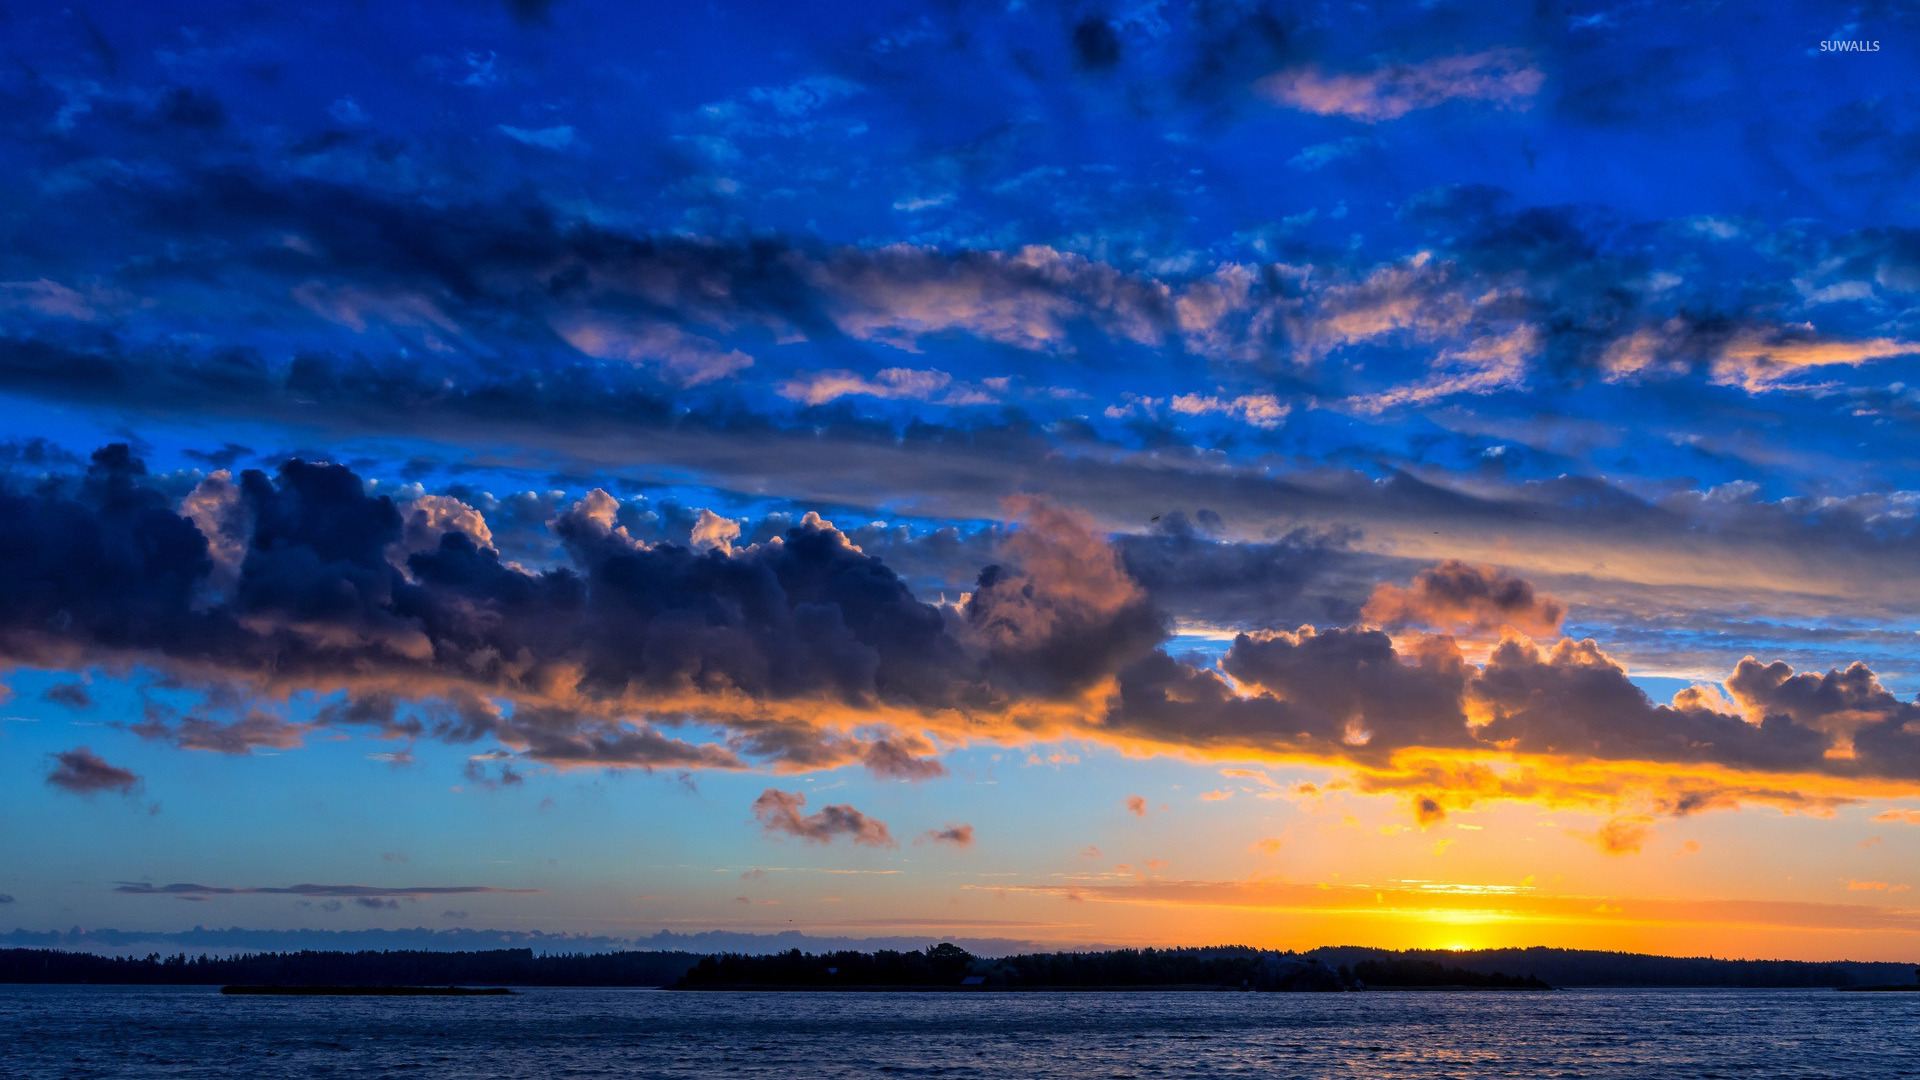 Amazing blue sky at sunset wallpaper - Nature wallpapers ... - photo#48